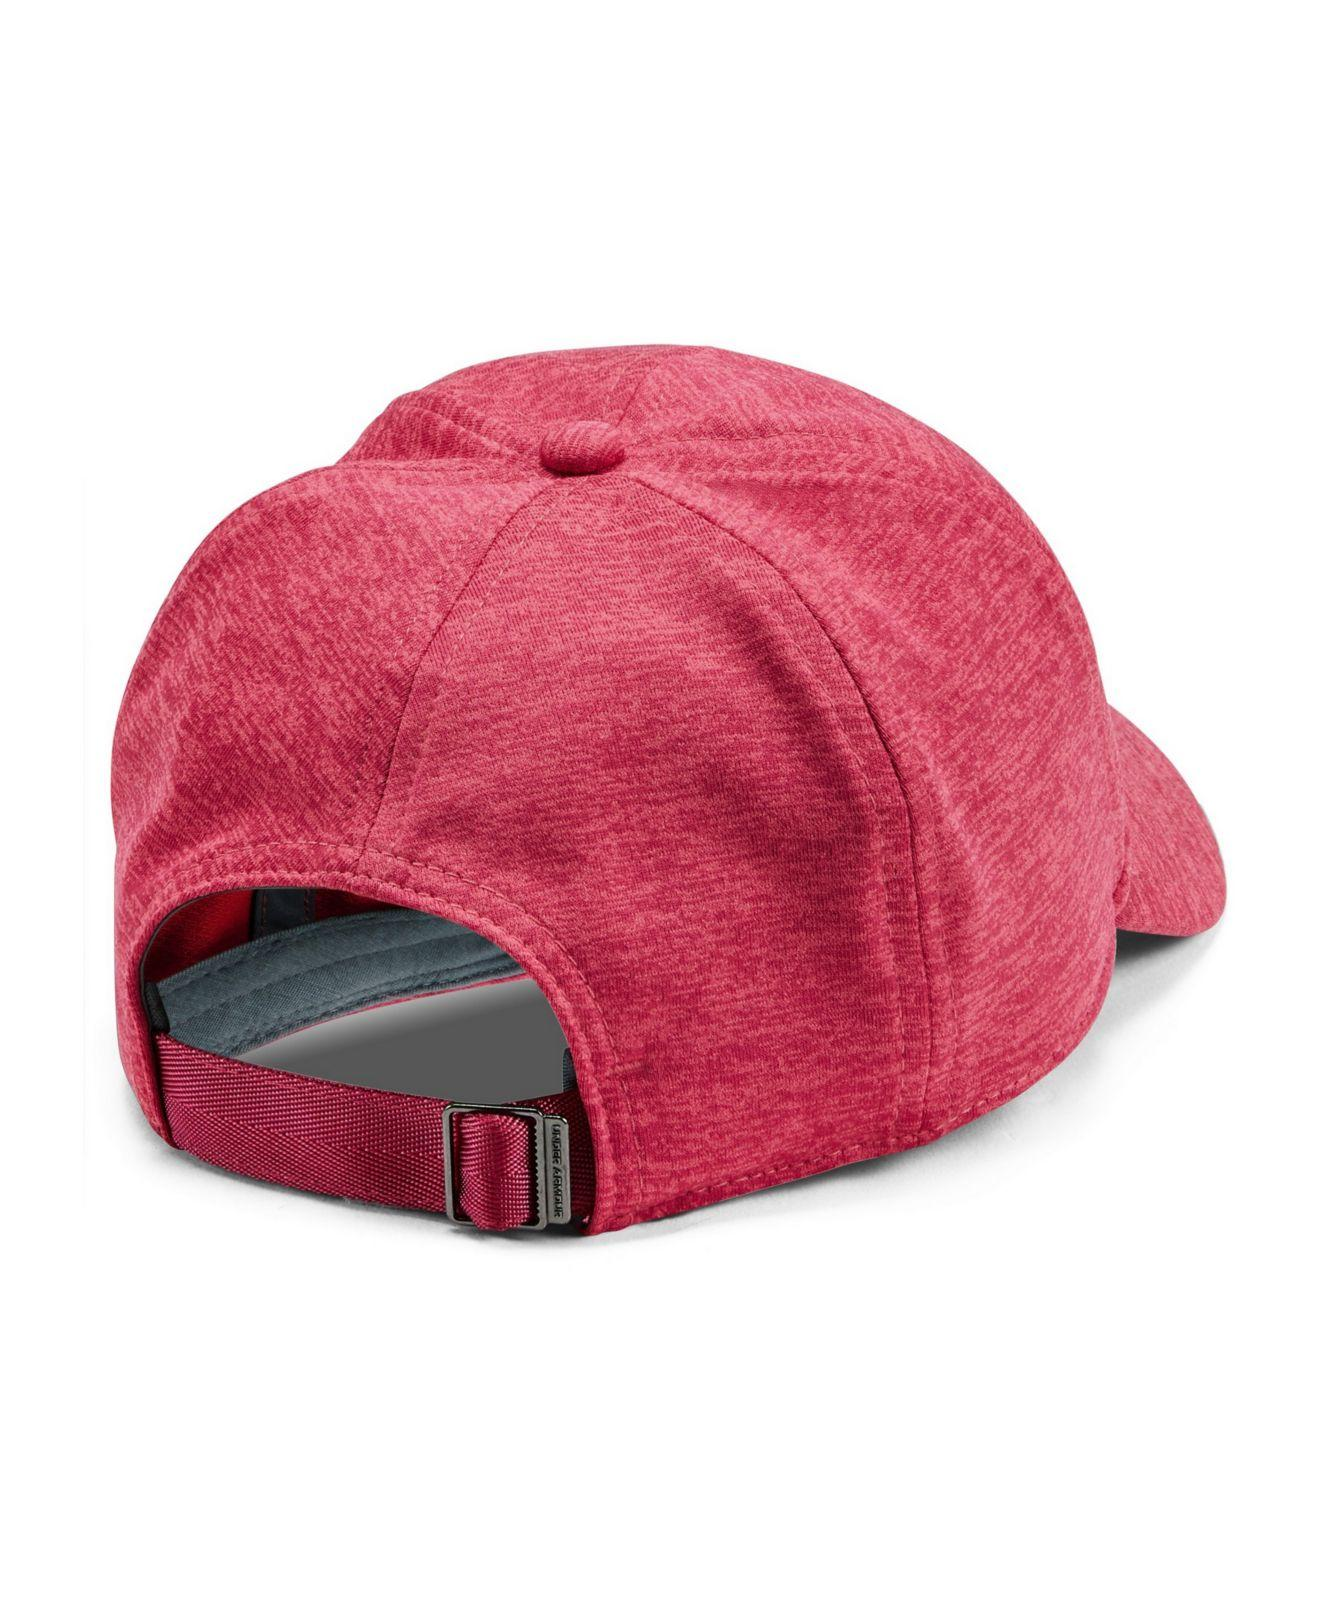 half off f95d1 8b8e9 Under Armour Twisted Renegade Free Fit Cap in Pink - Lyst